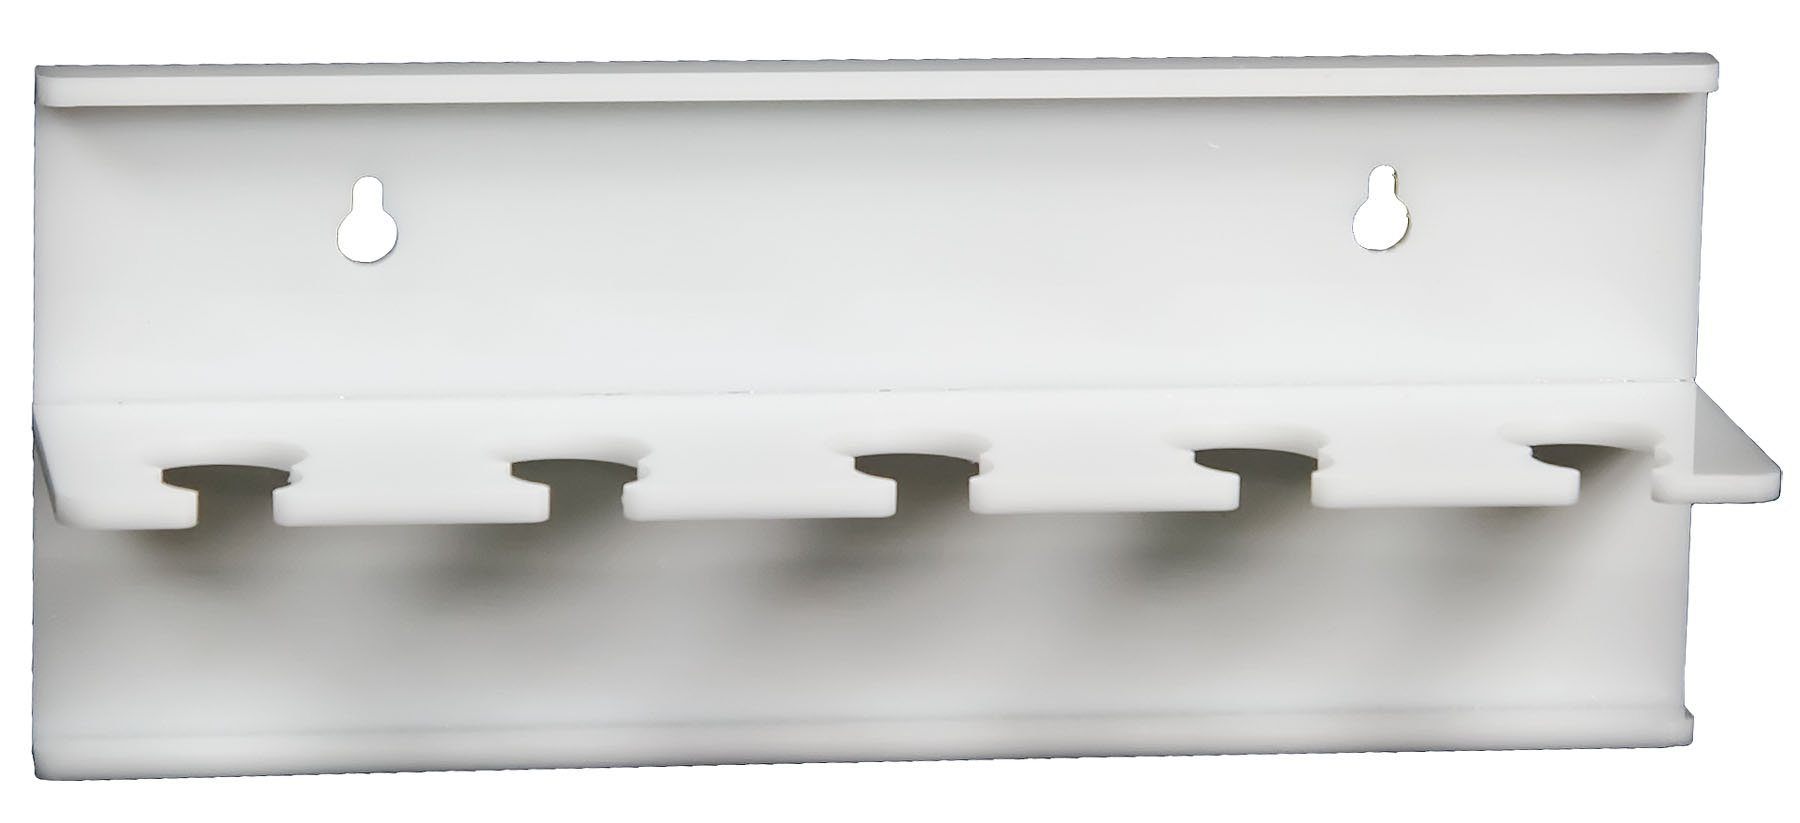 TrippNT 50696 Wall Mountable Auto Pipettor Holder with 5 Slots, 10'' x 5'' x 3'' WHD by TrippNT